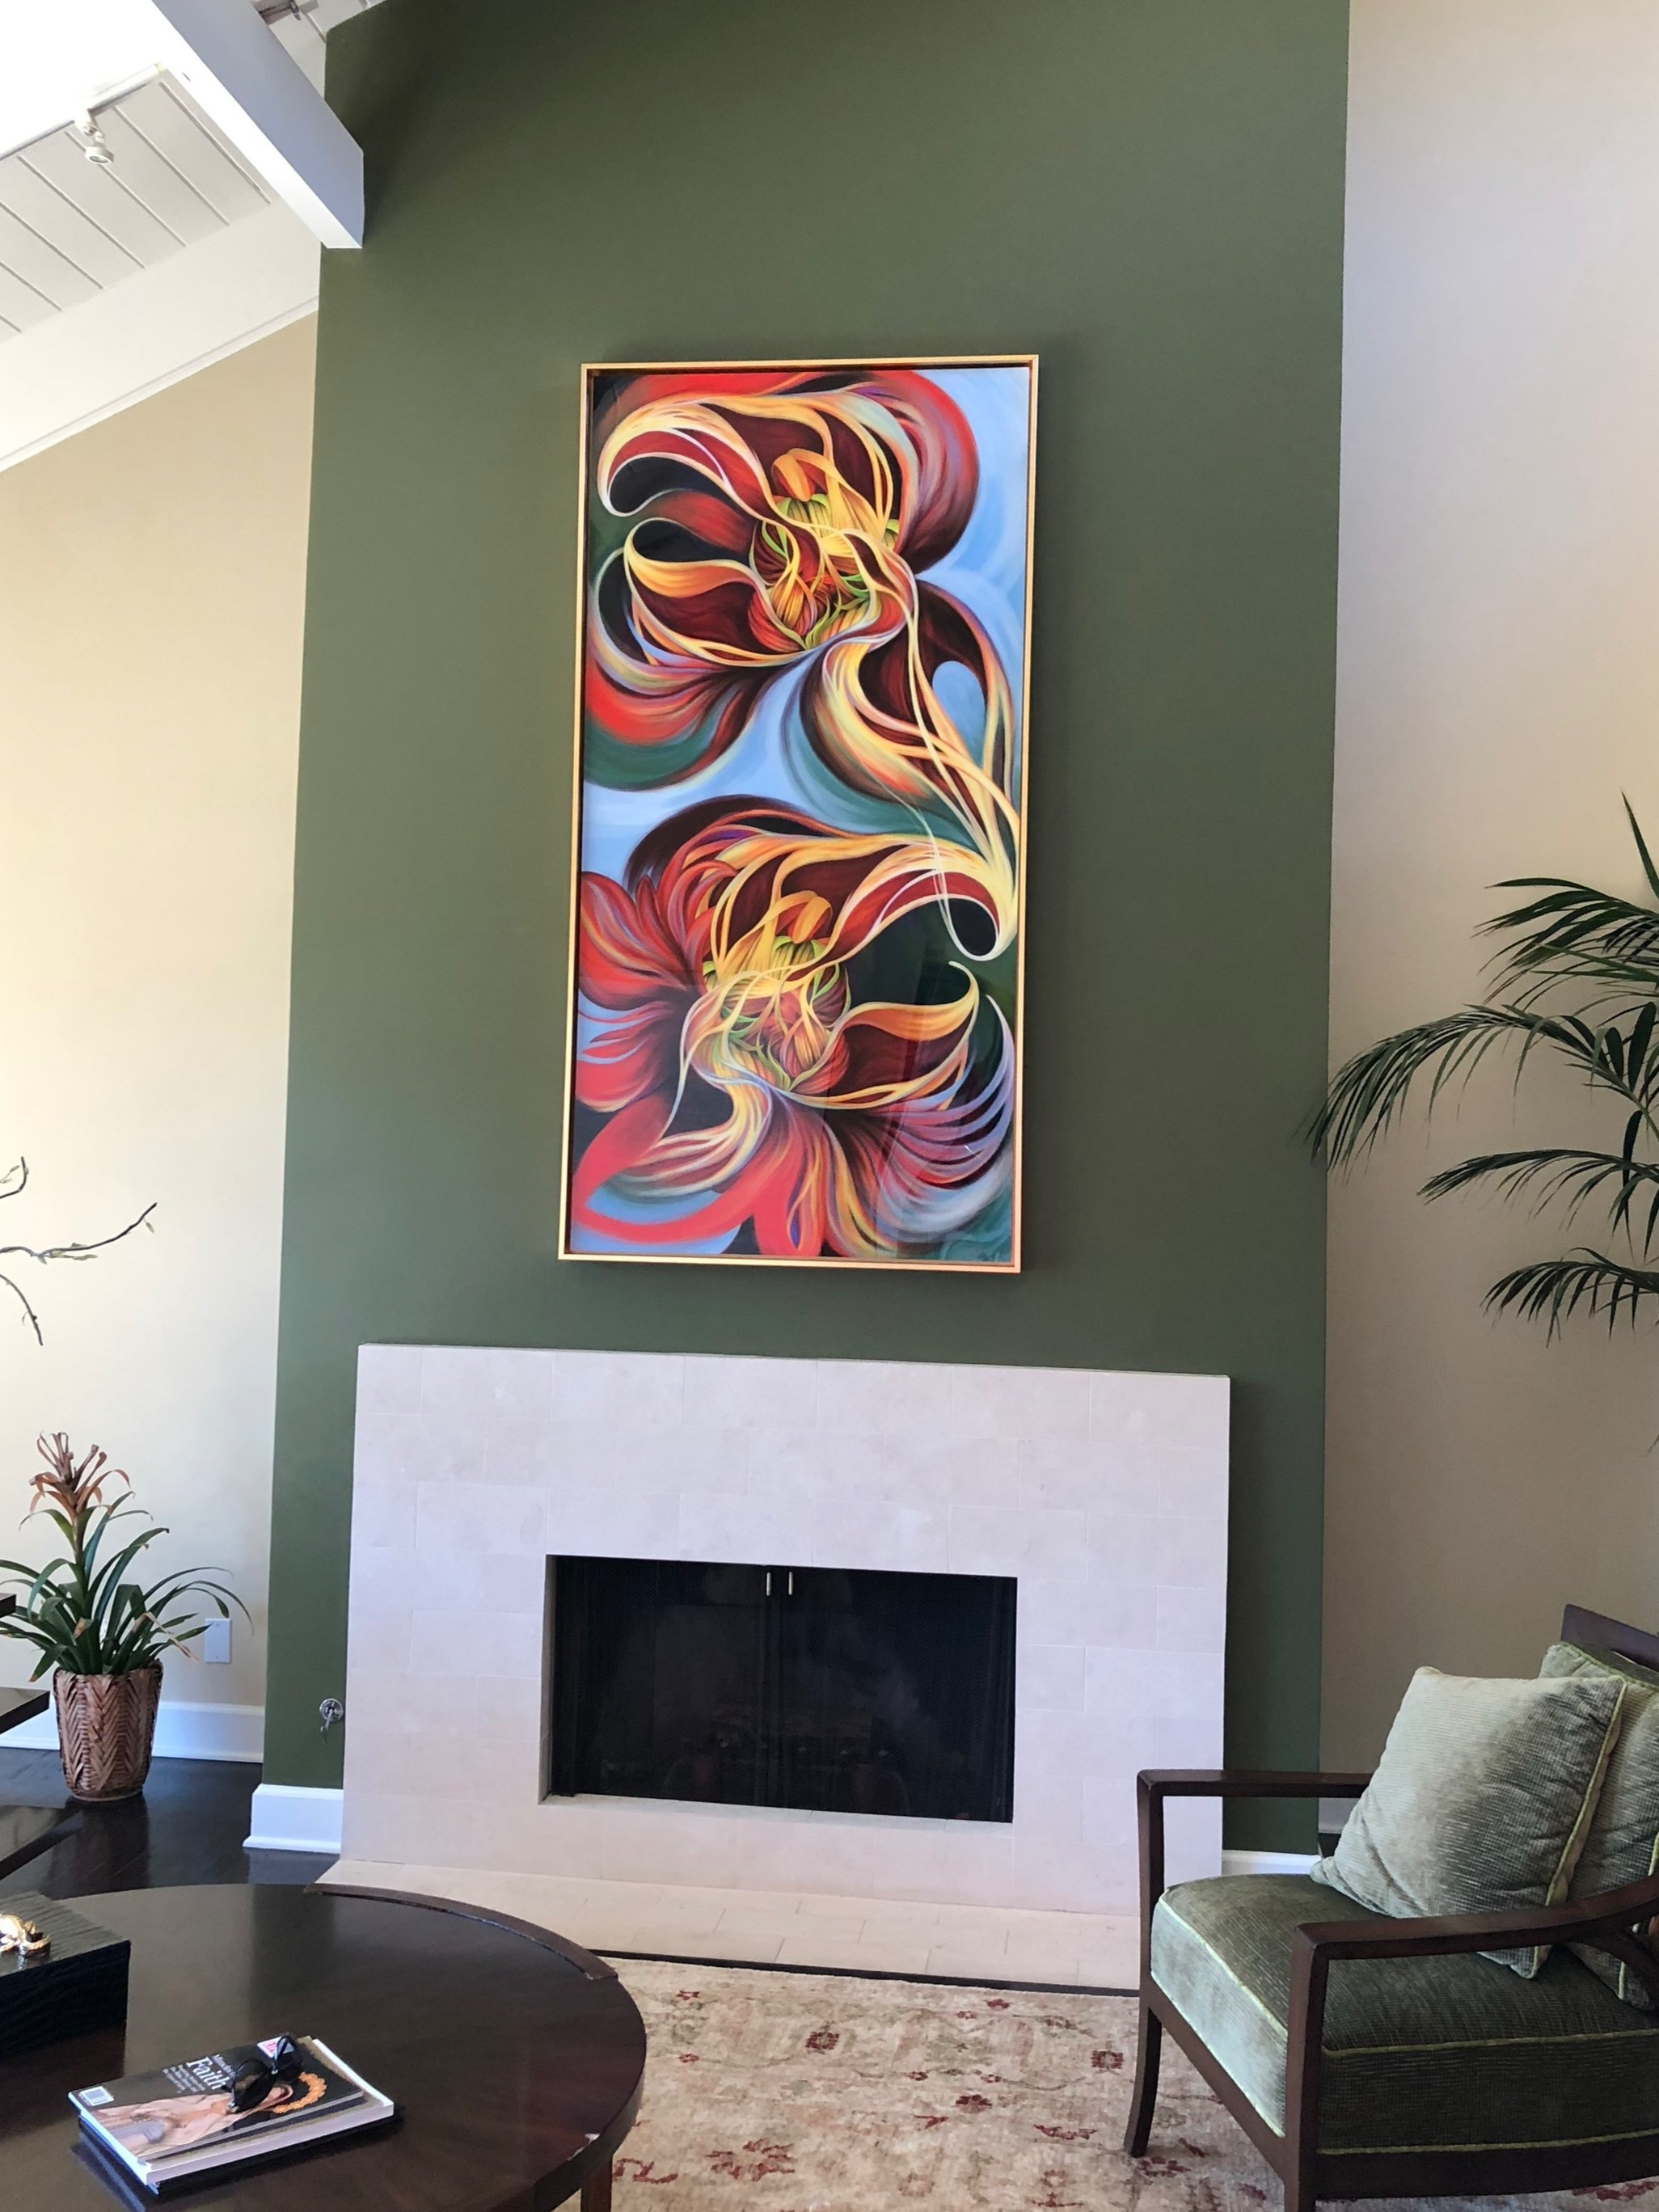 Phoenix Dance, digital painting, hanging in patron's home, 2017.